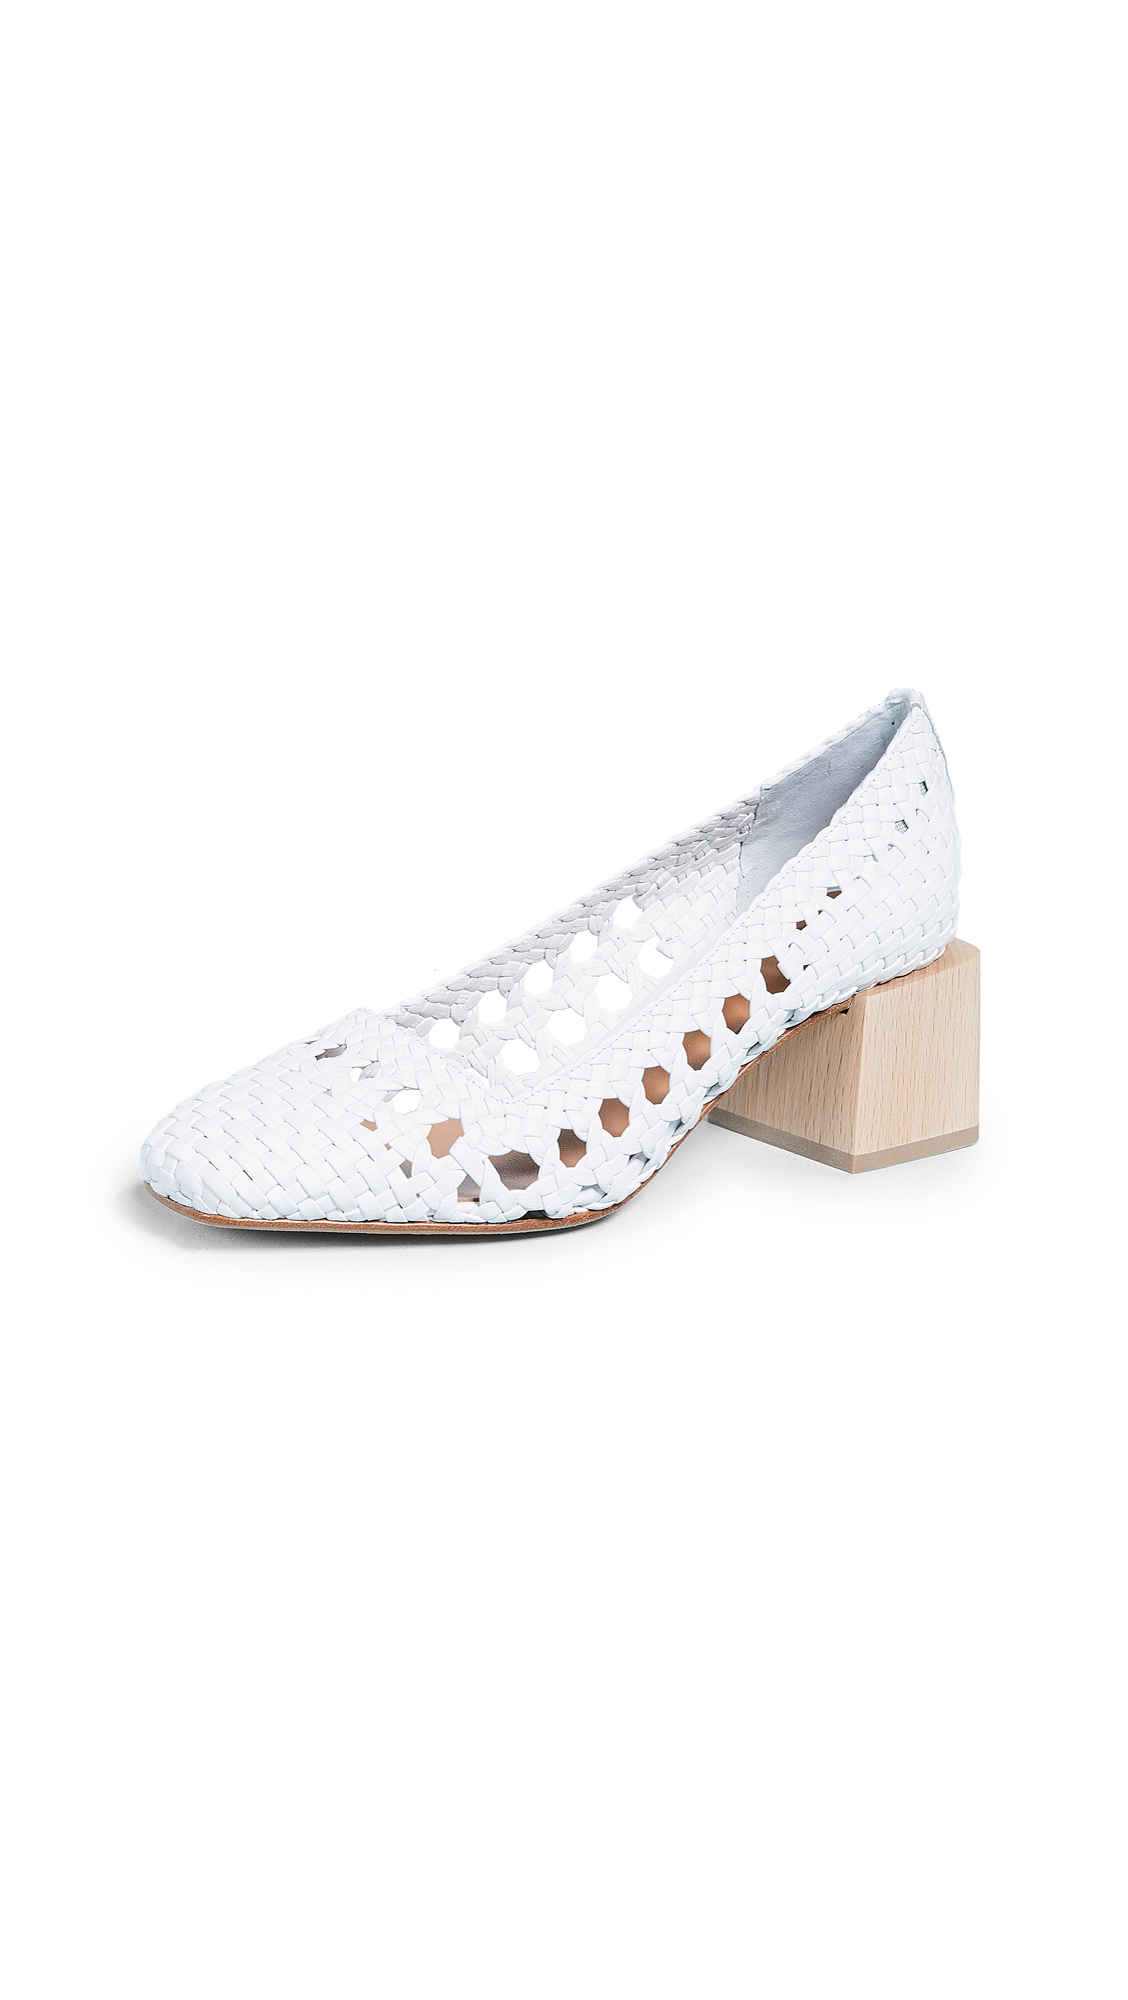 LOQ Franca Pumps - Blanco